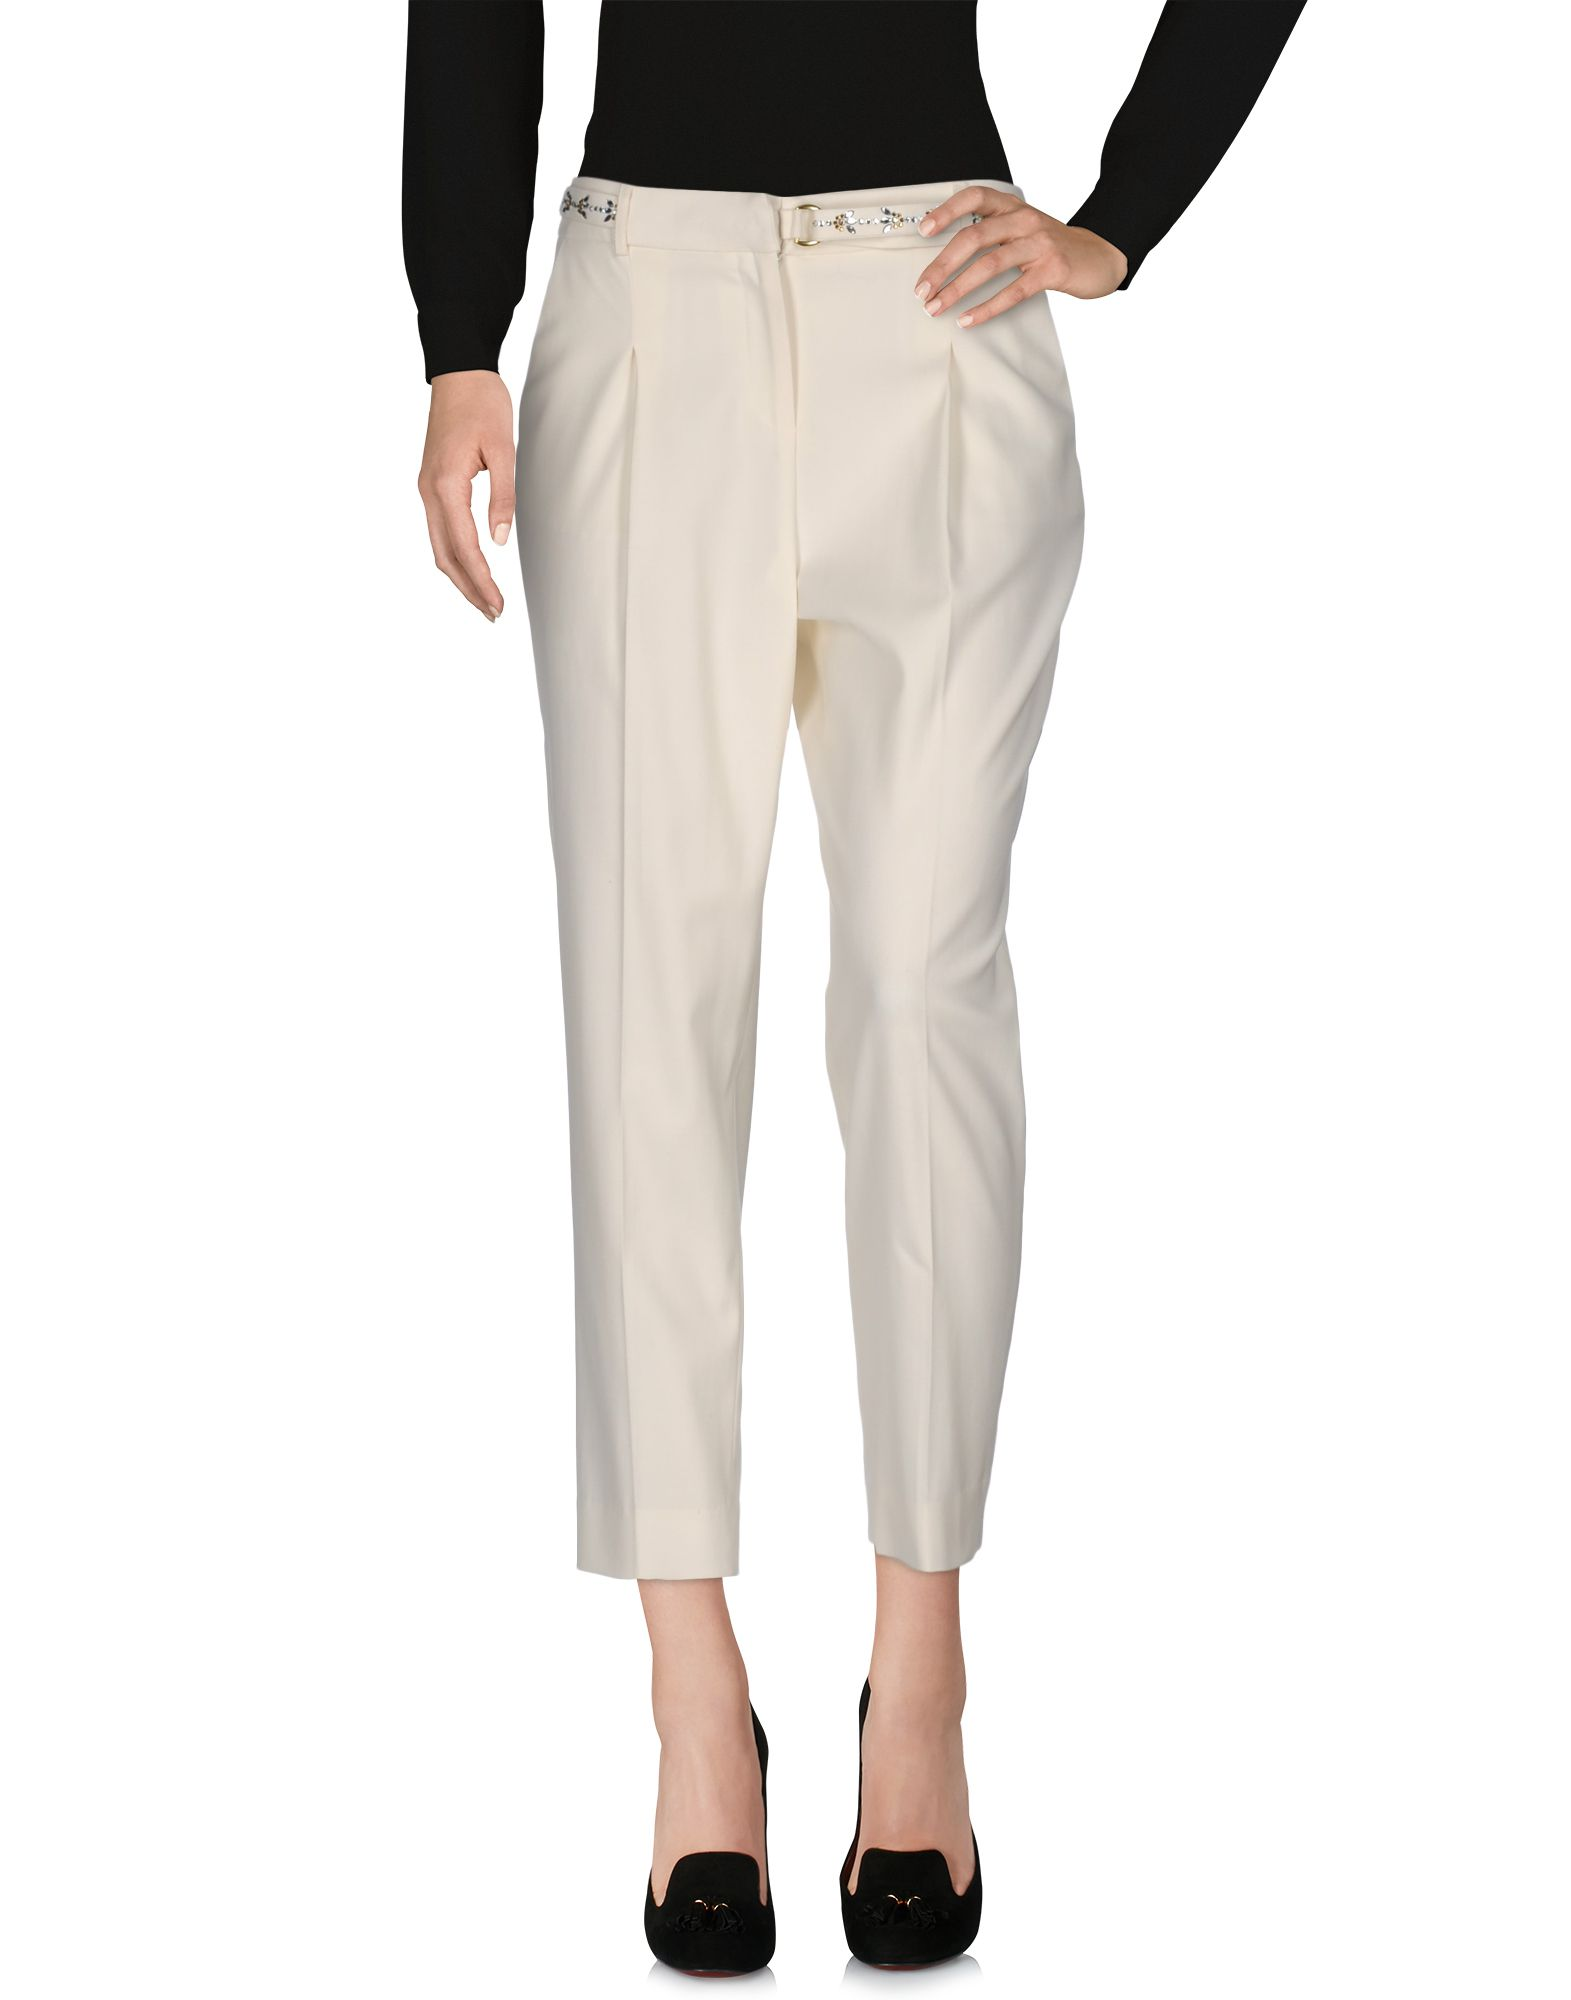 Pantalone Vdp Collection Donna - Acquista online su 6pmbWAz